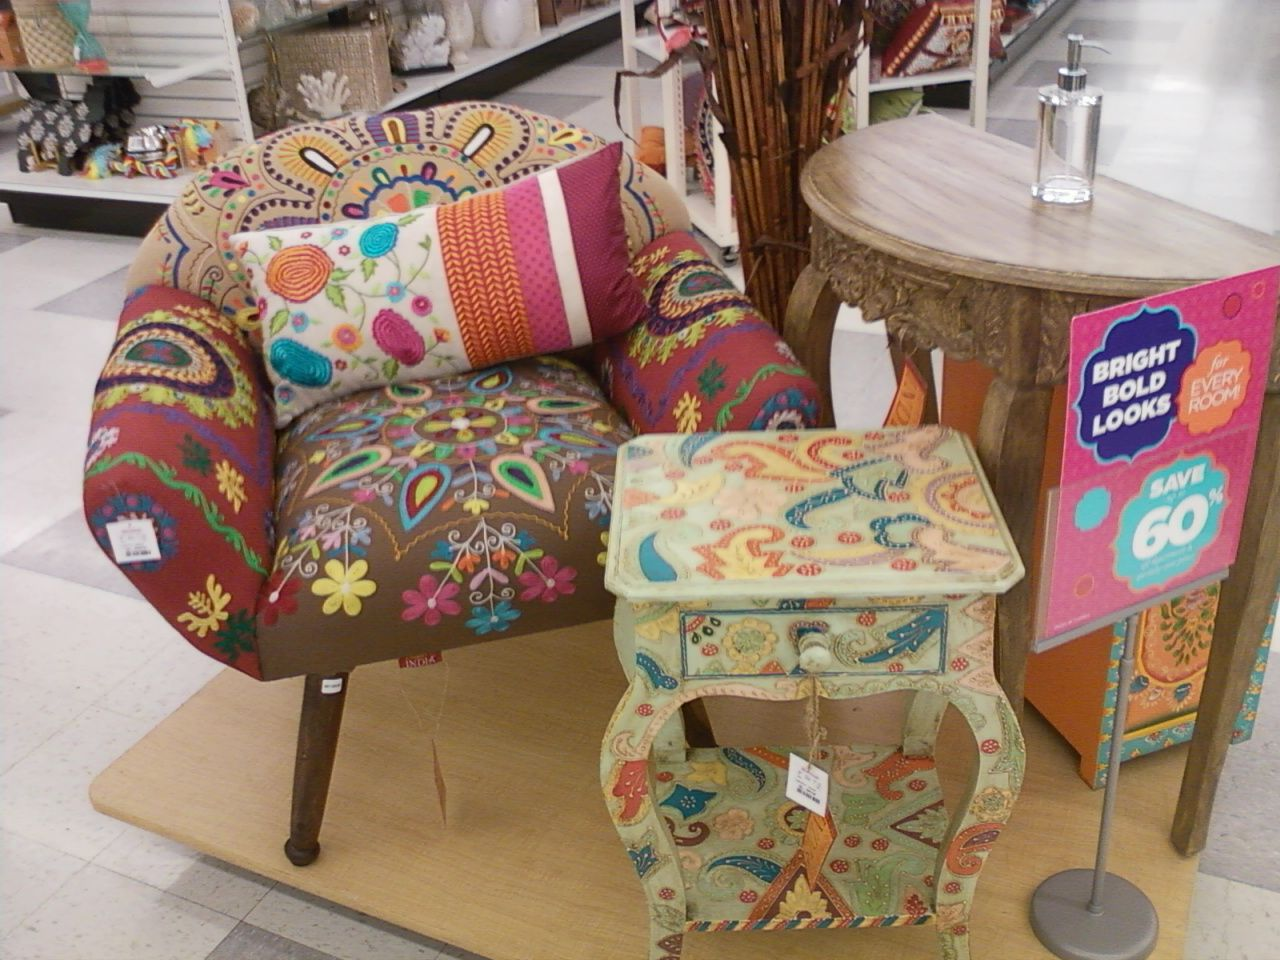 Superior India Furniture TJ Maxx